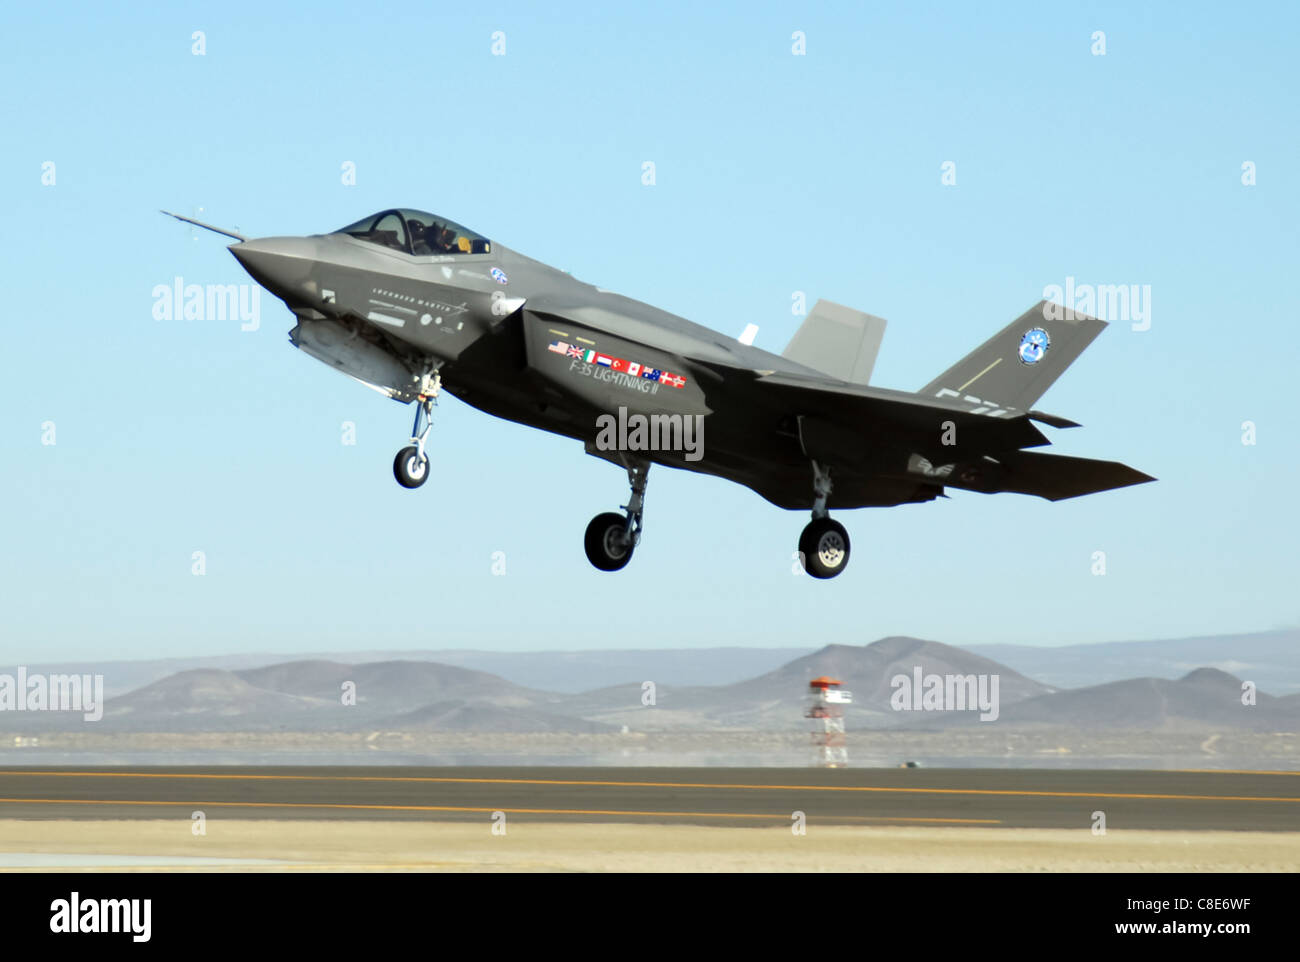 An F-35 Joint Strike Fighter, marked AA-1, lands Oct. 23 at Edwards Air Force Base, Calif. - Stock Image